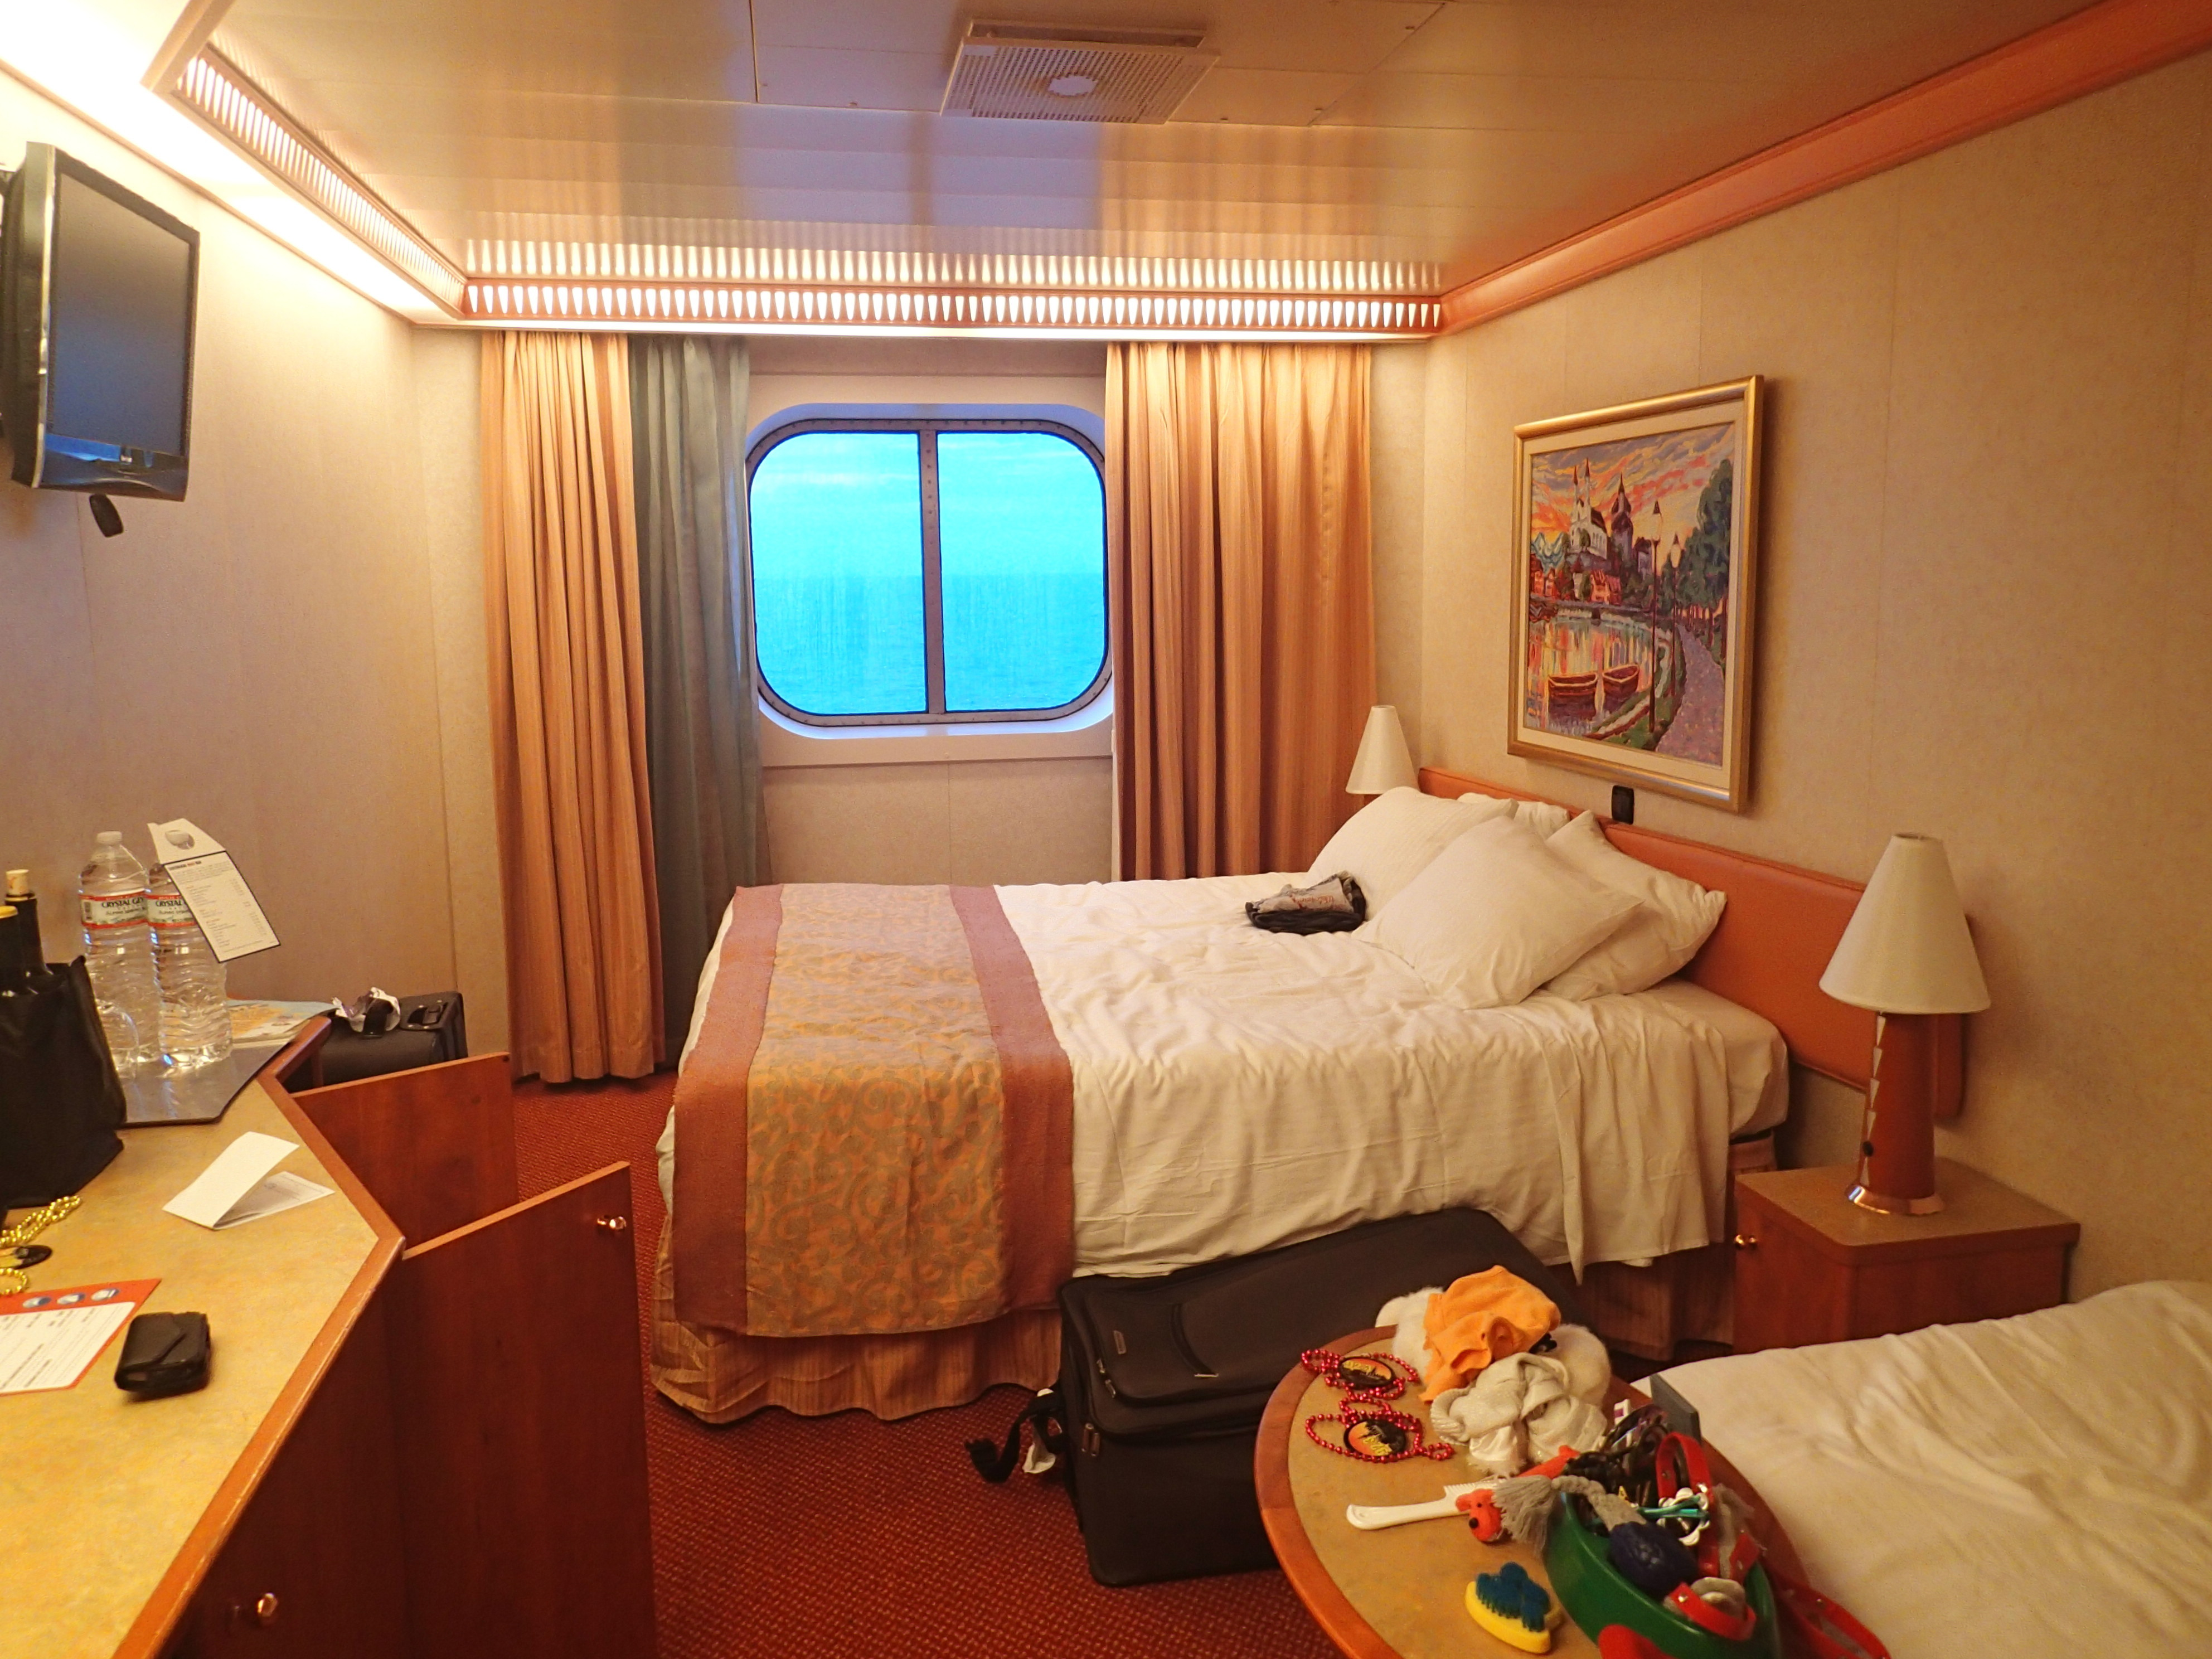 Carnival splendor cruise review jul 28 2013 food and for T and c bedrooms reviews